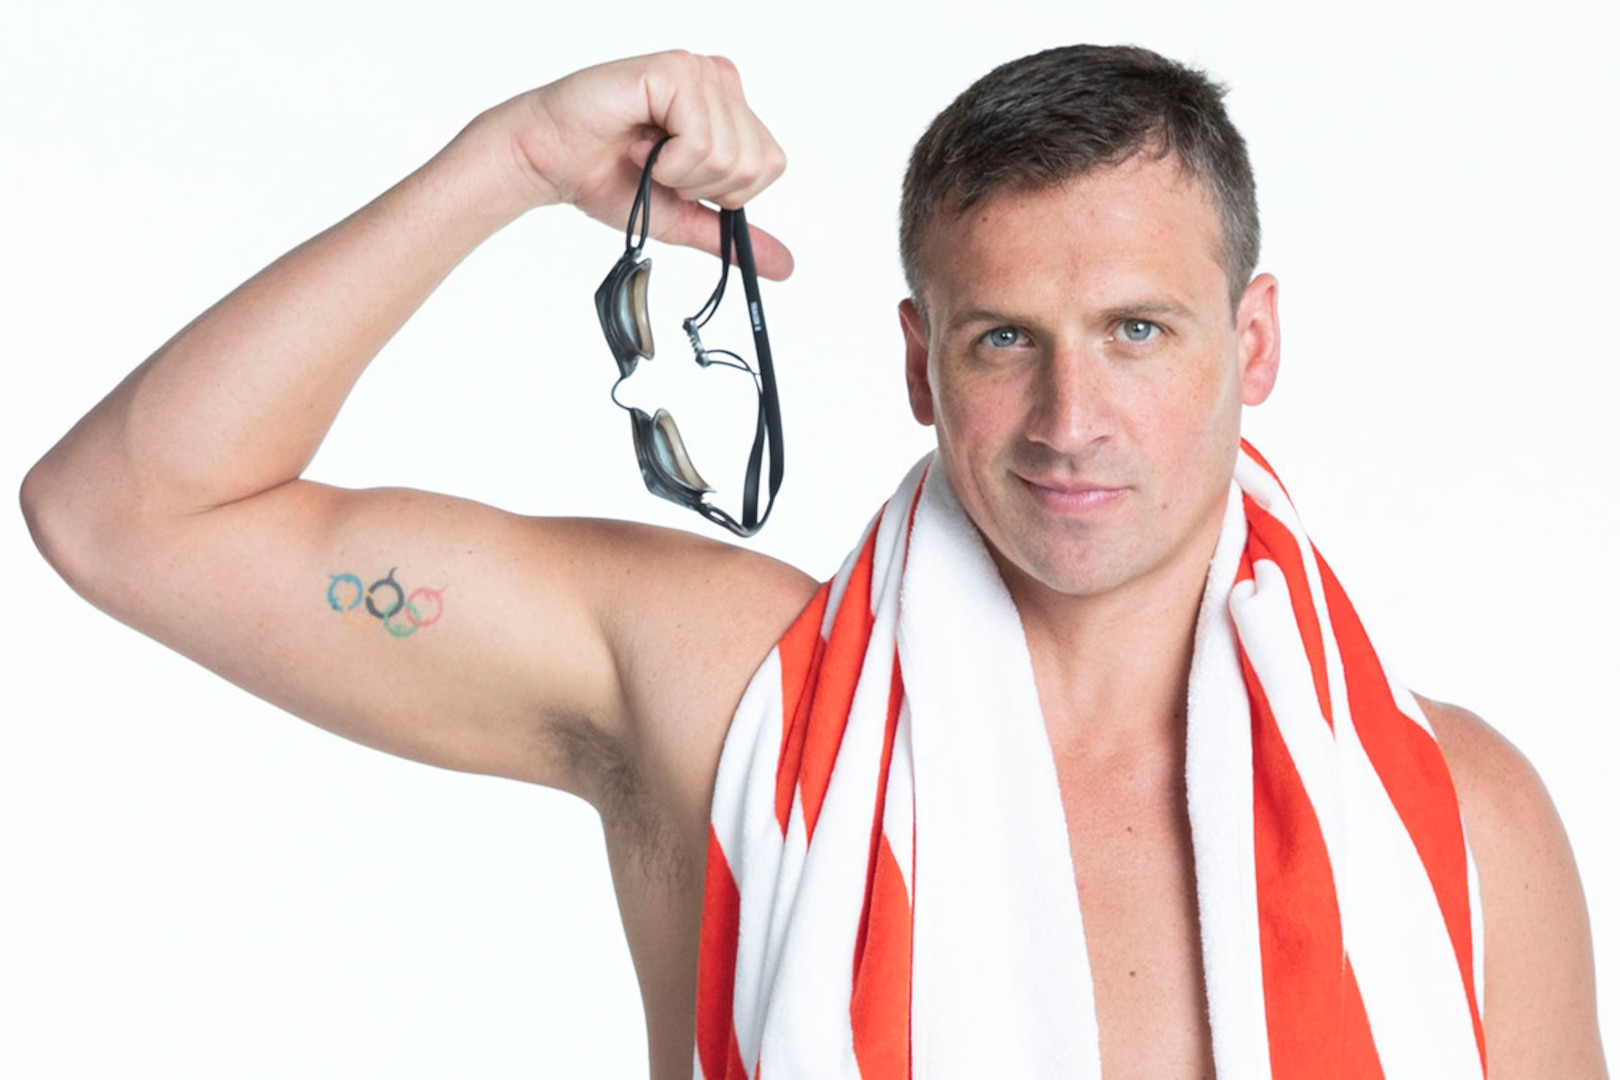 Ryan Lochte flexes and shows the Olympic ring tattoo on his bicep